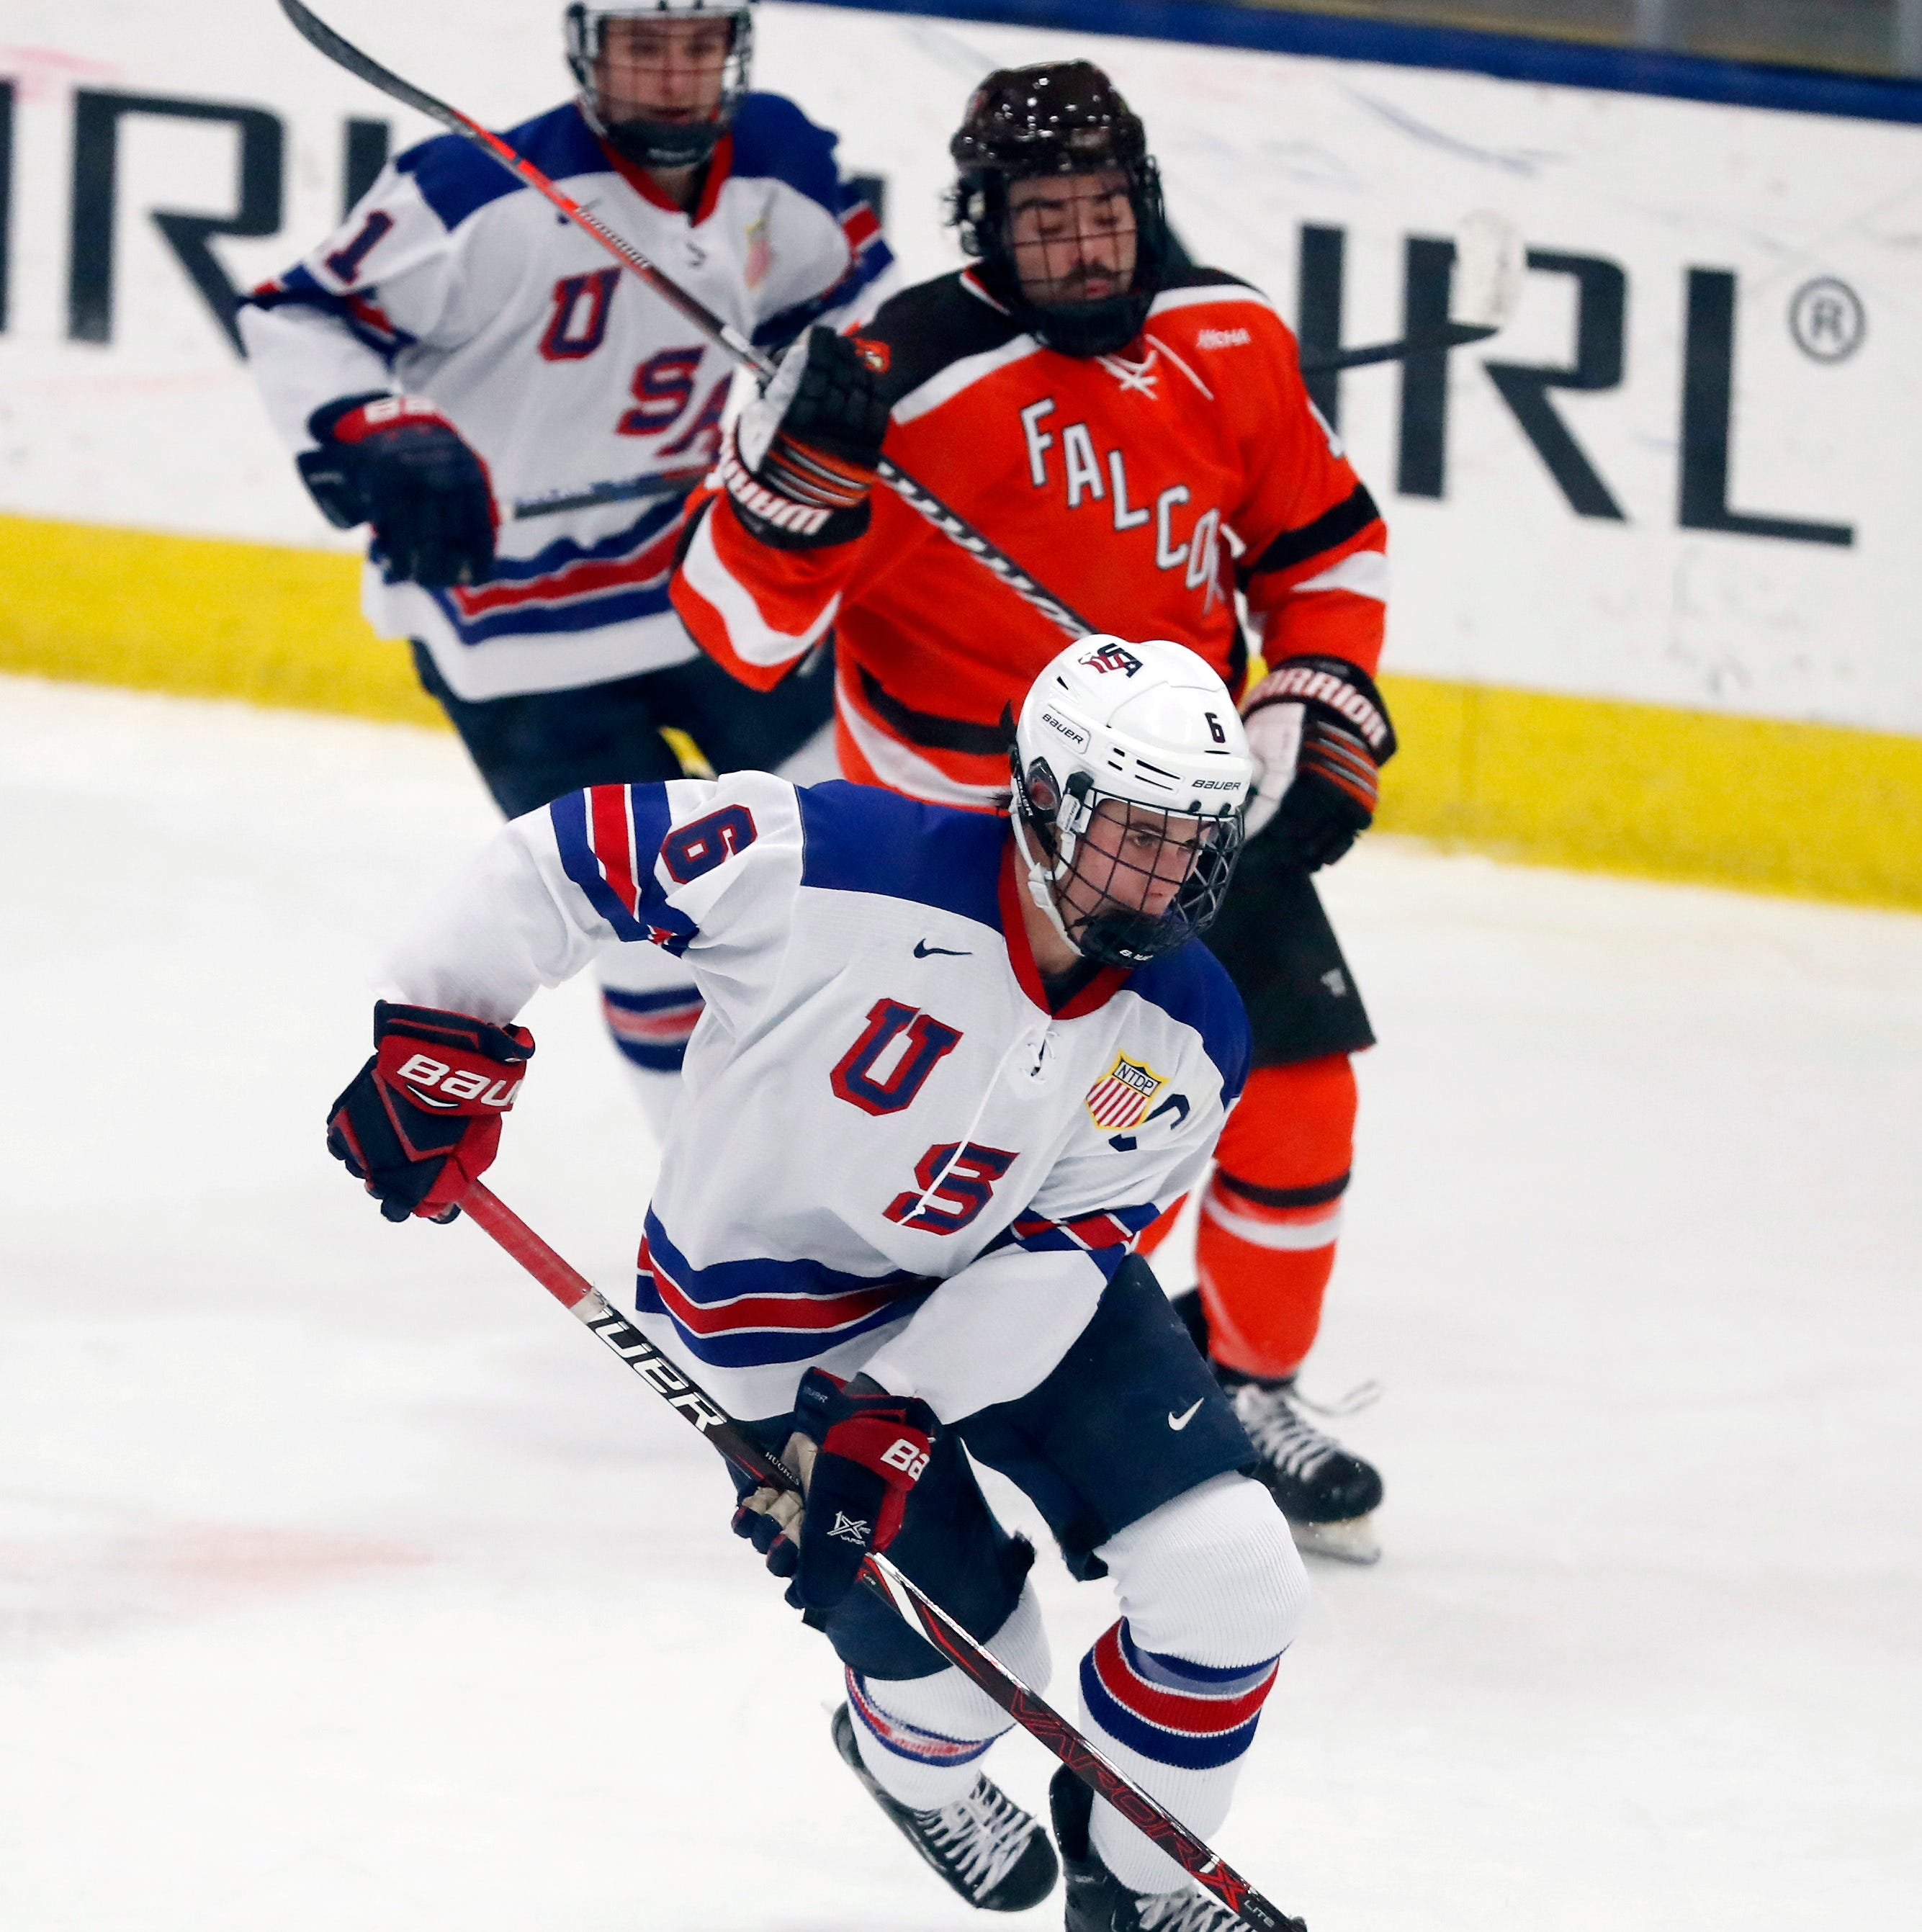 Jack Hughes, possible Devils draft pick, to headline U18 World Championships